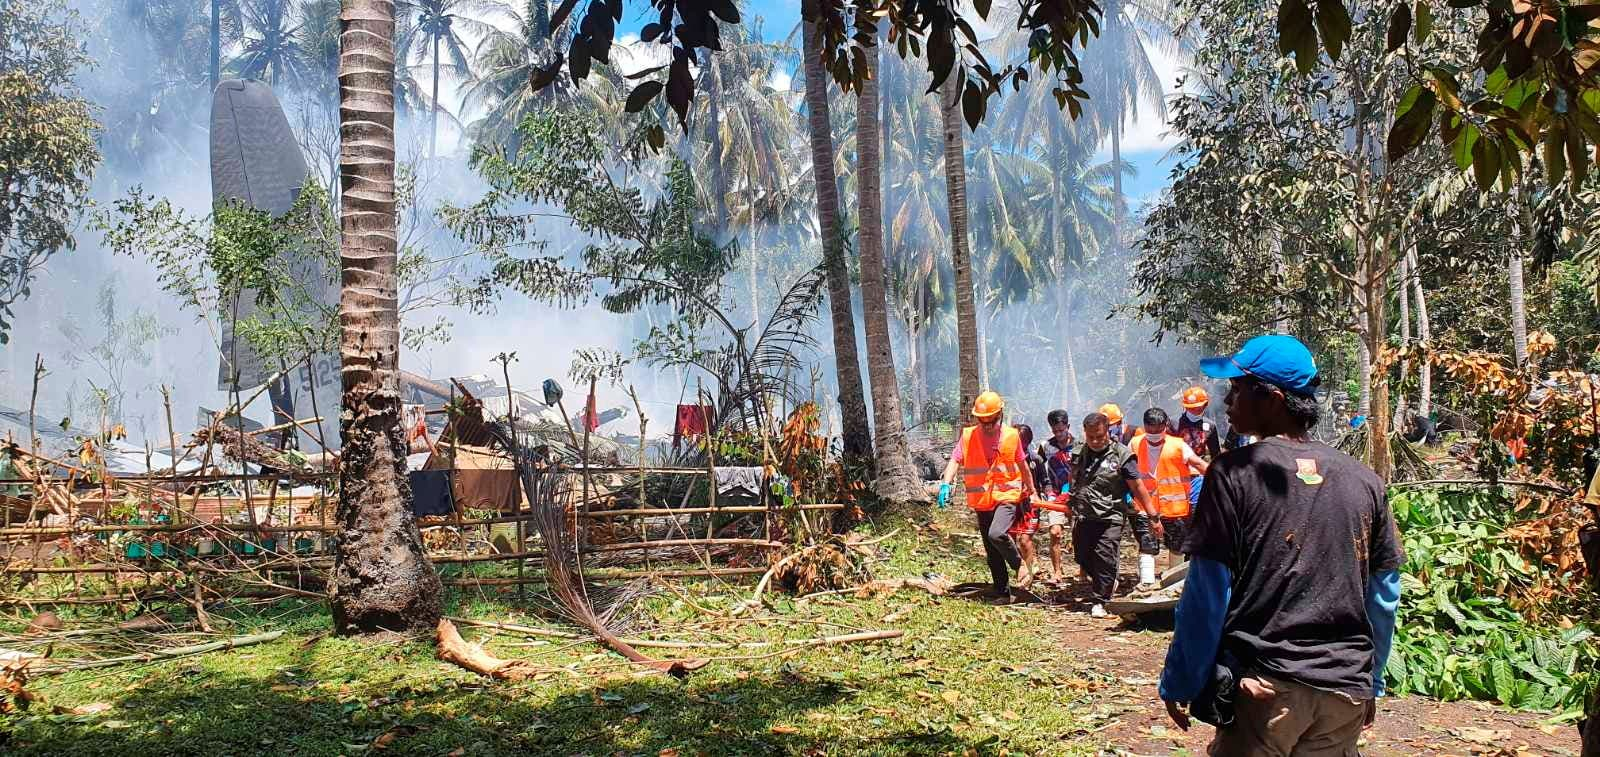 First responders work at the site after a Philippines Air Force Lockheed C-130 plane carrying troops crashed on landing in Patikul, Sulu province, Philippines July 4, 2021.  (Reuters)